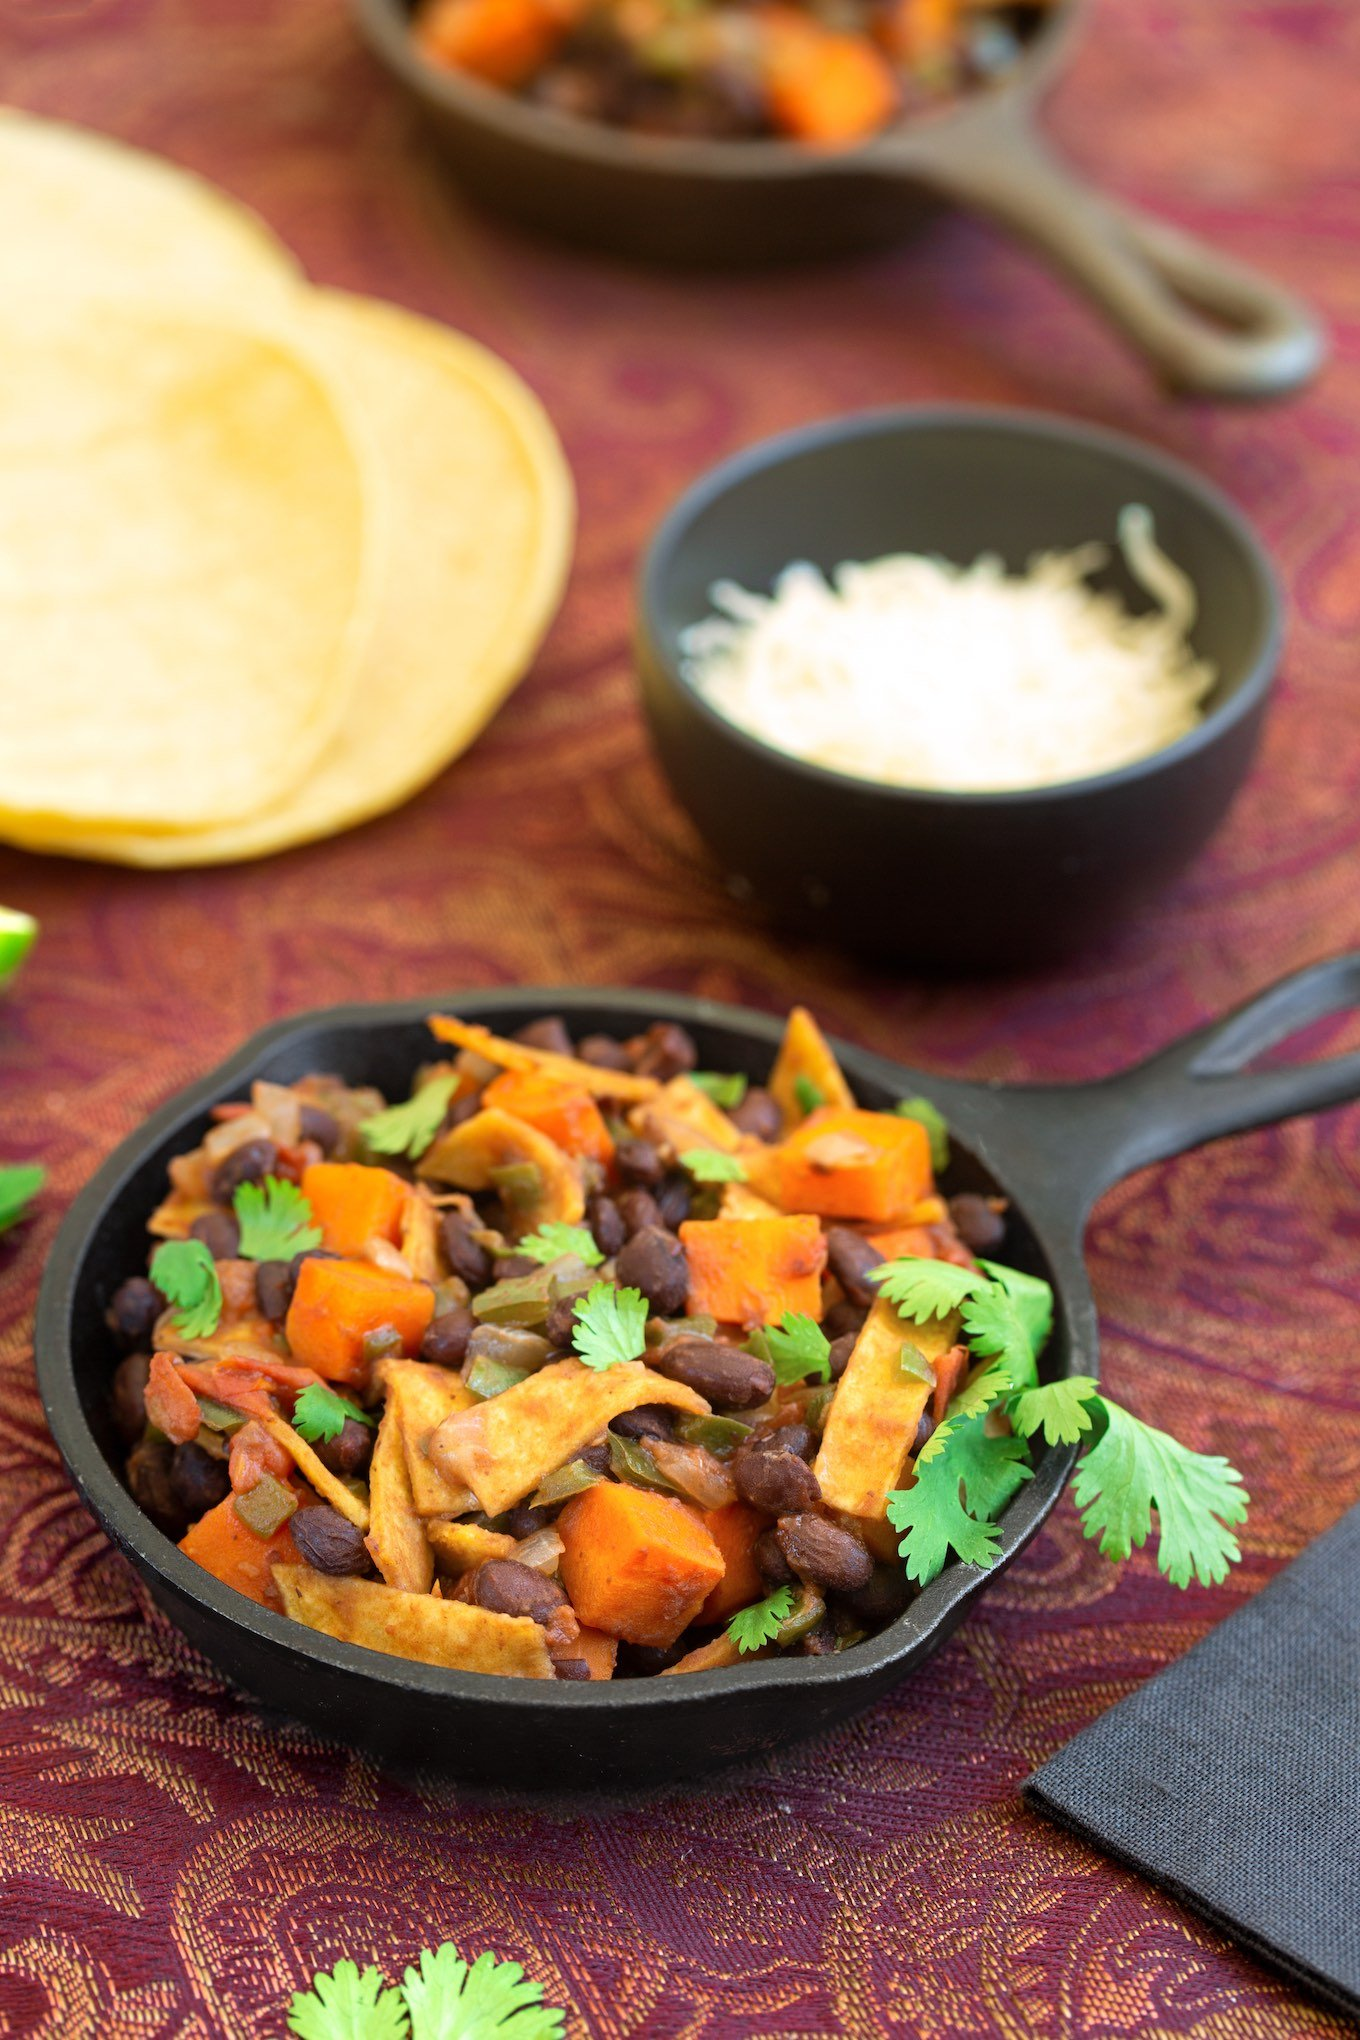 Black beans with sweet potatoes & tortillas